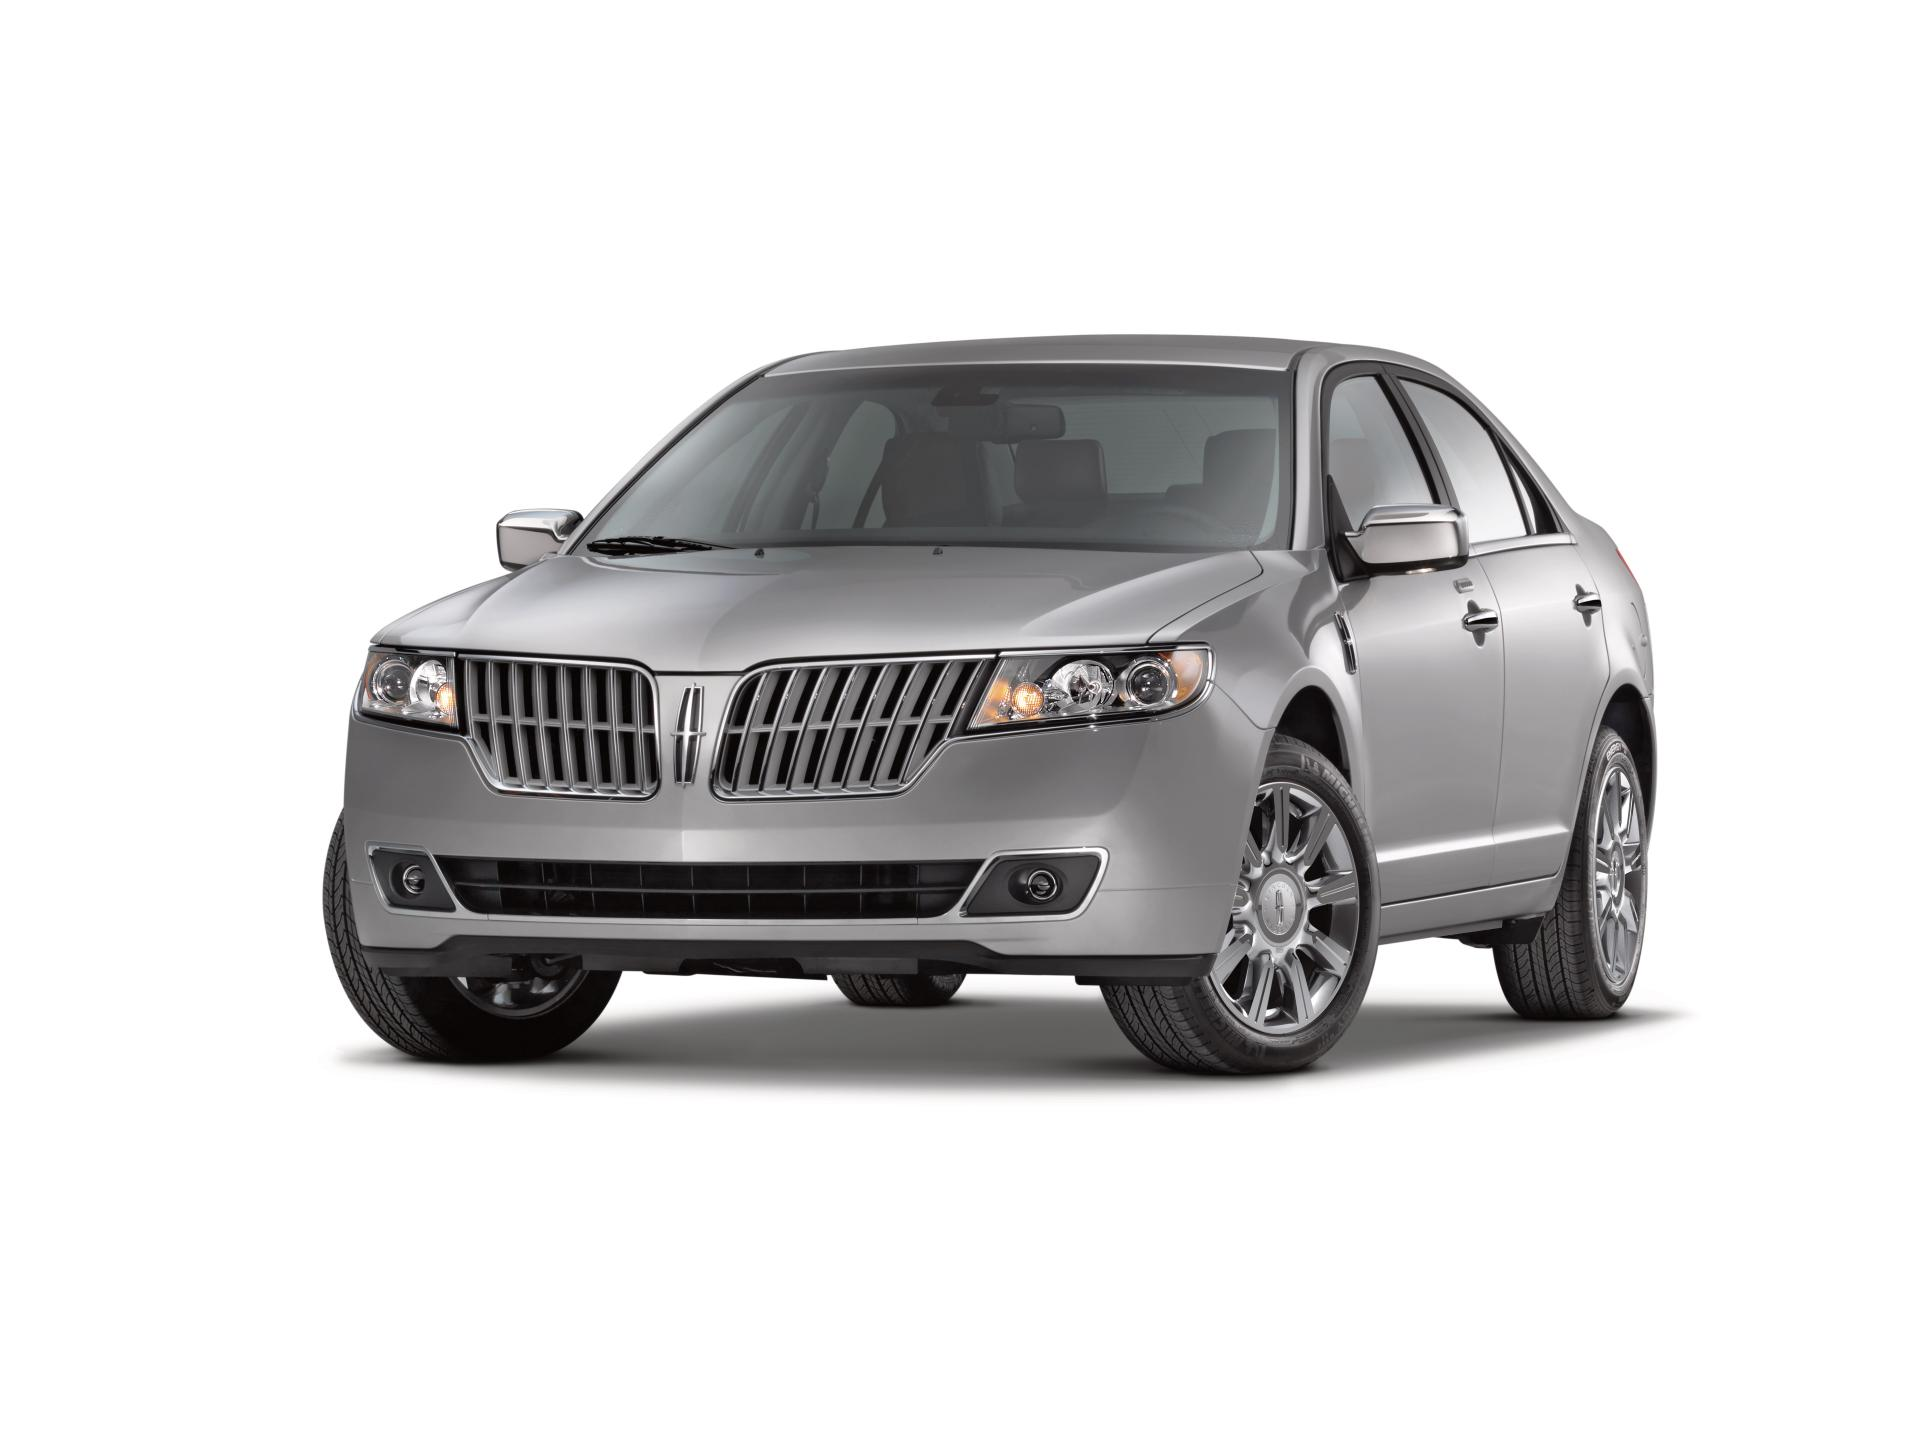 2012 lincoln mkz technical specifications and data engine dimensions and mechanical details. Black Bedroom Furniture Sets. Home Design Ideas